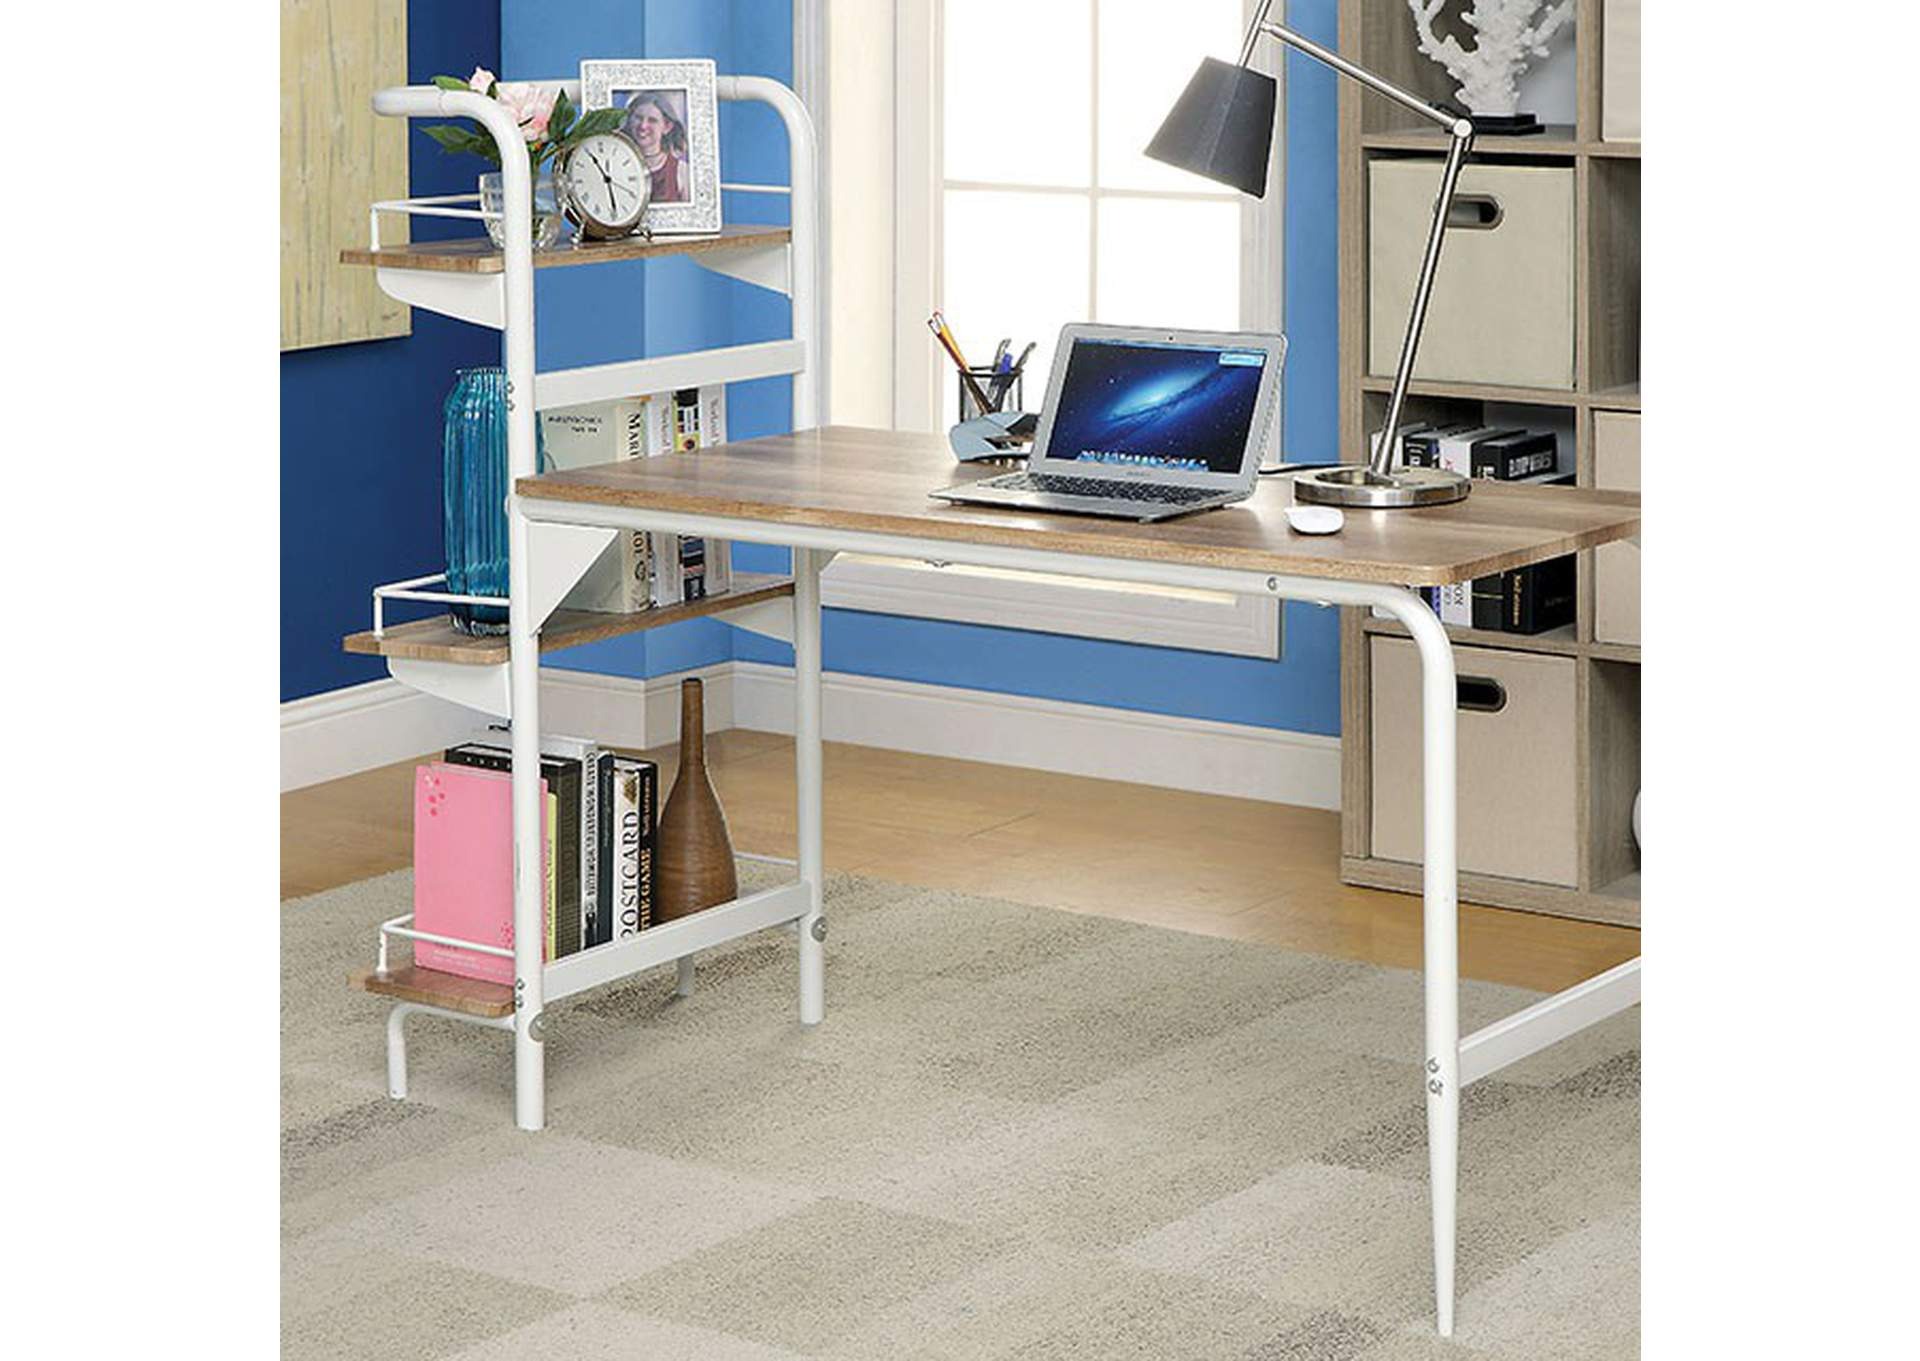 Flamingo Furniture Maisy Chrome Computer Desk W Bookshelf